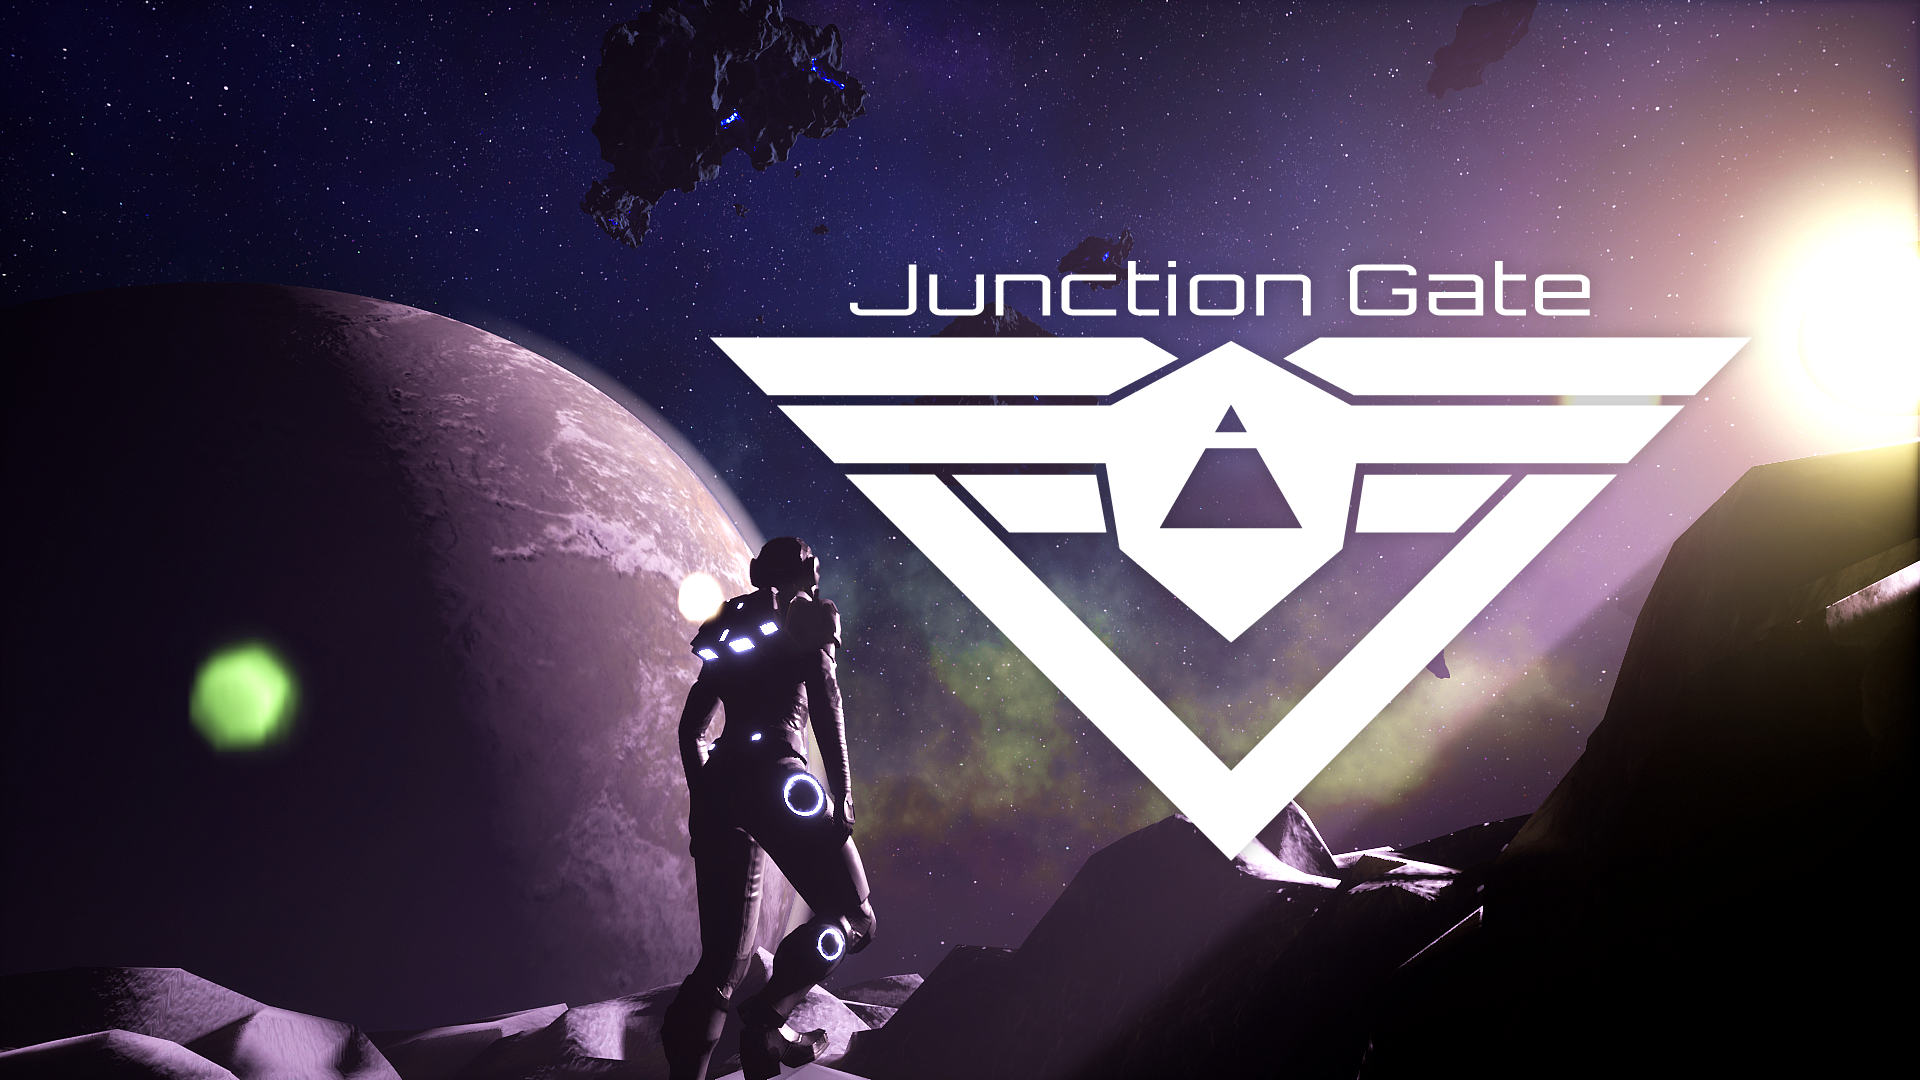 The First Official Junction Gate Wallpaper